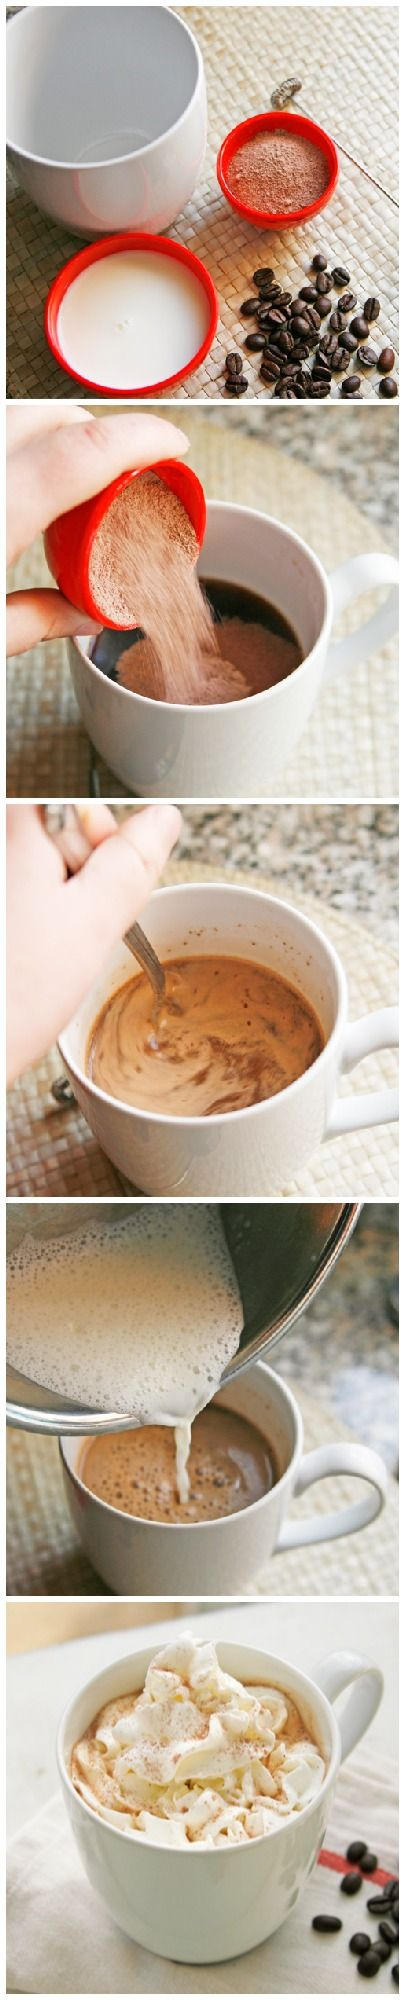 HOW TO: Make a Mocha Latte {in just 3 ingredients!} #HowTo